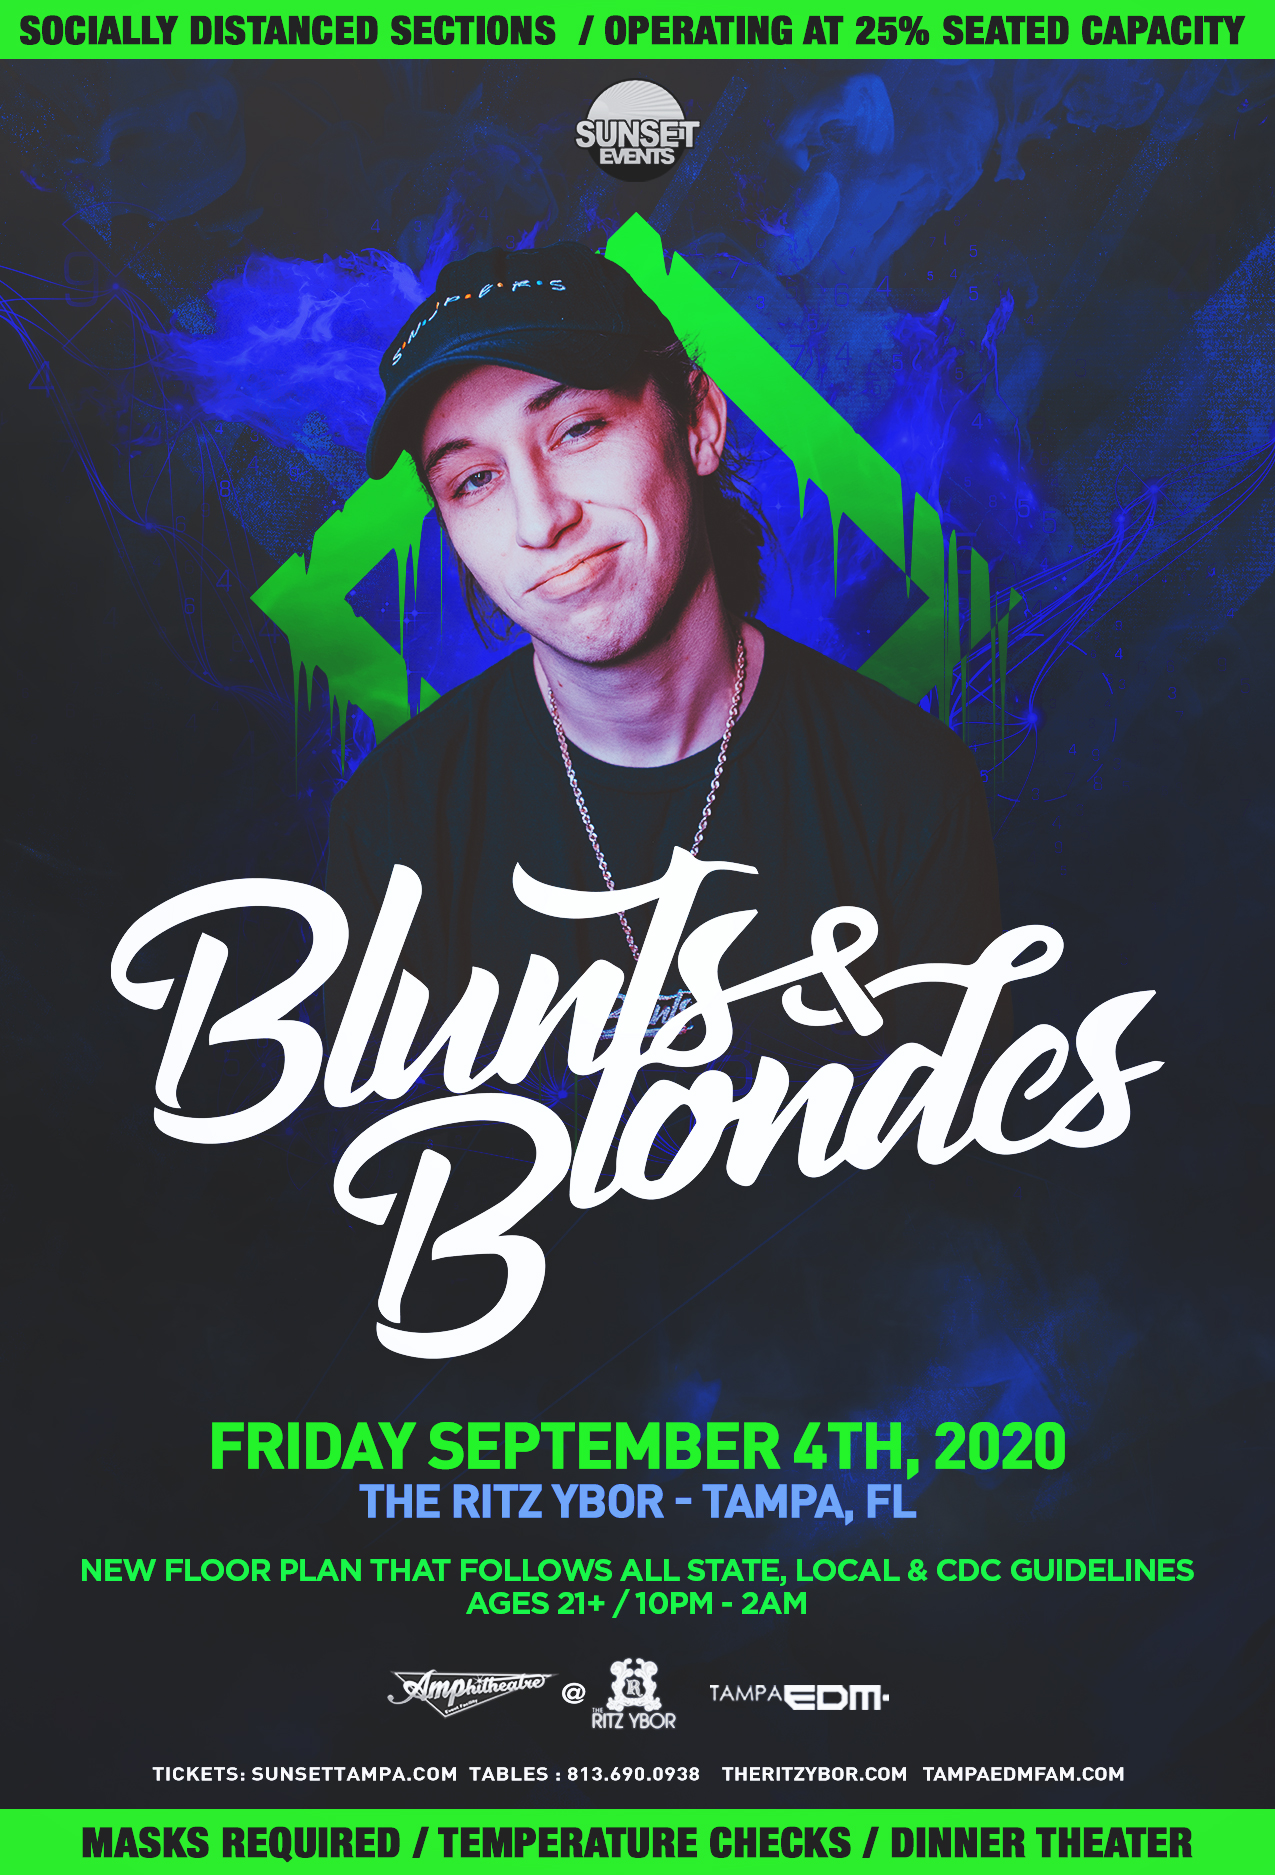 Tampa Bay Sunset Smile Halloween 2020 Blunts & Blondes   Socially Distanced Event   Labor Day Weekend